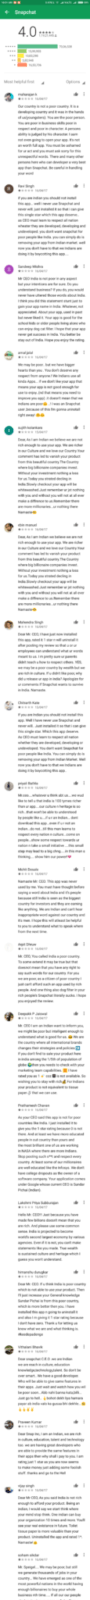 Snapchat Play store Reviews Section